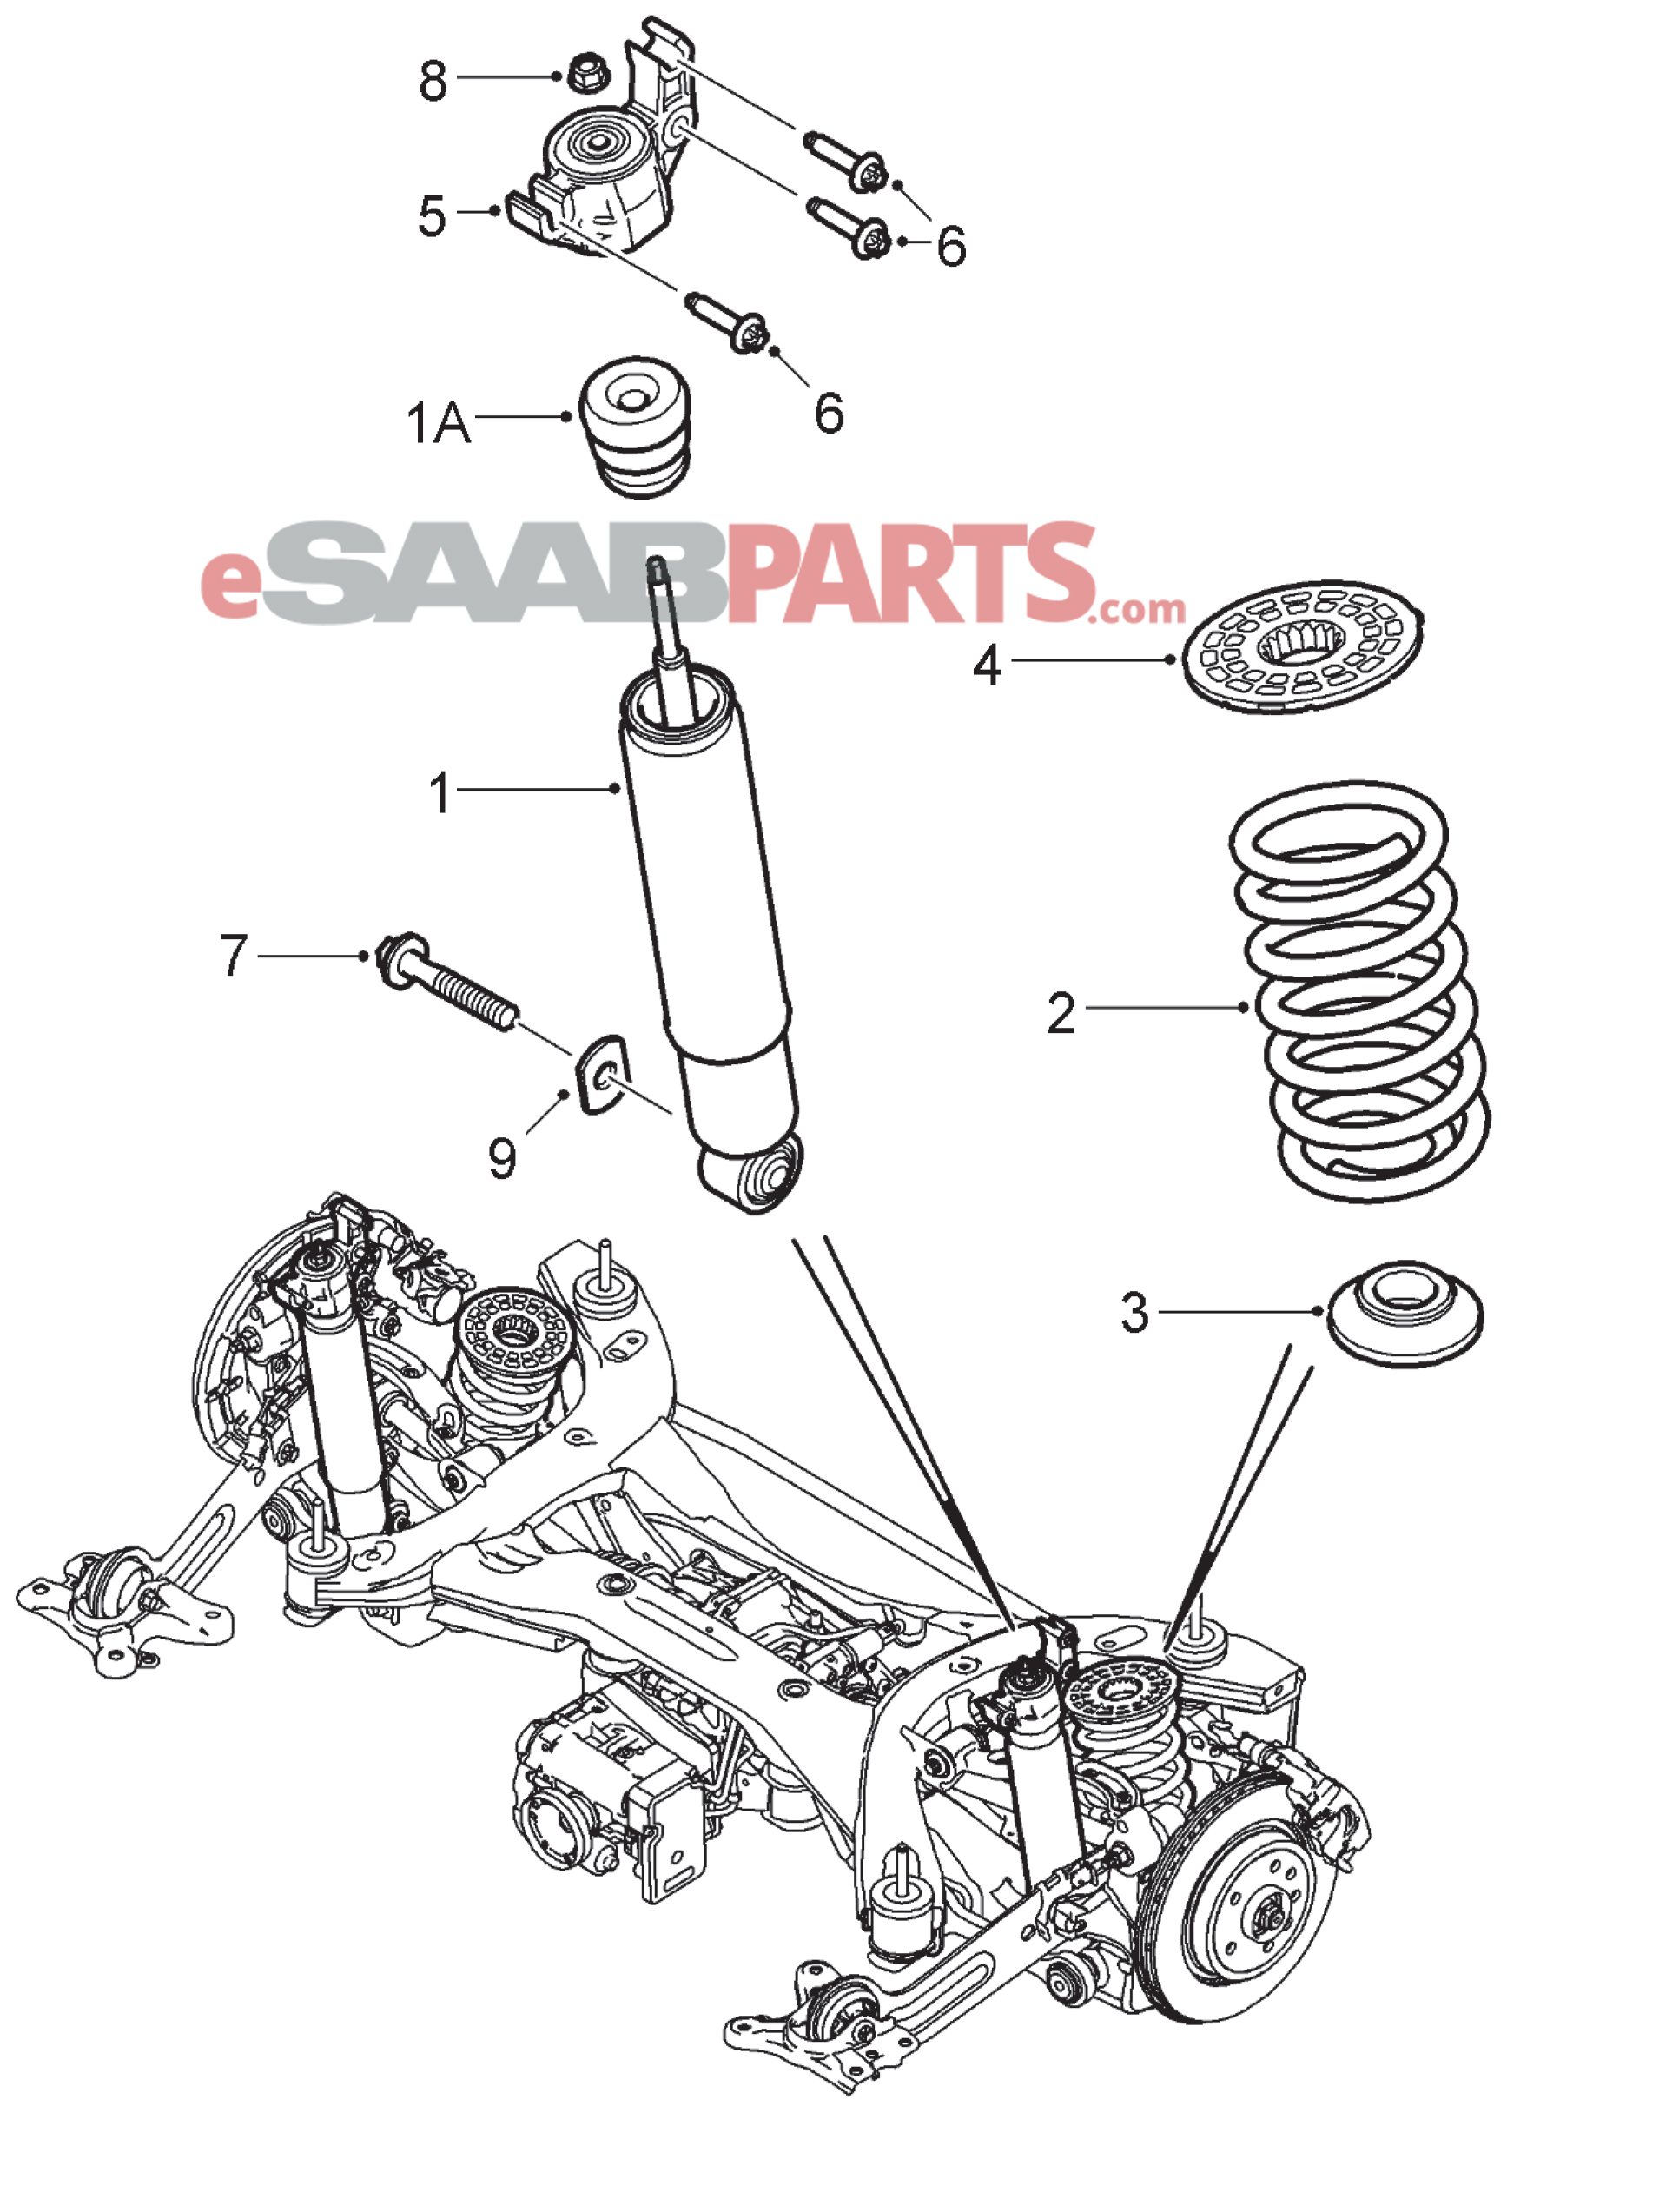 12848627 saab rear shock absorber xwd code x2 or xf genuine rh esaabparts com saab 93 front suspension diagram saab 900 front suspension diagram